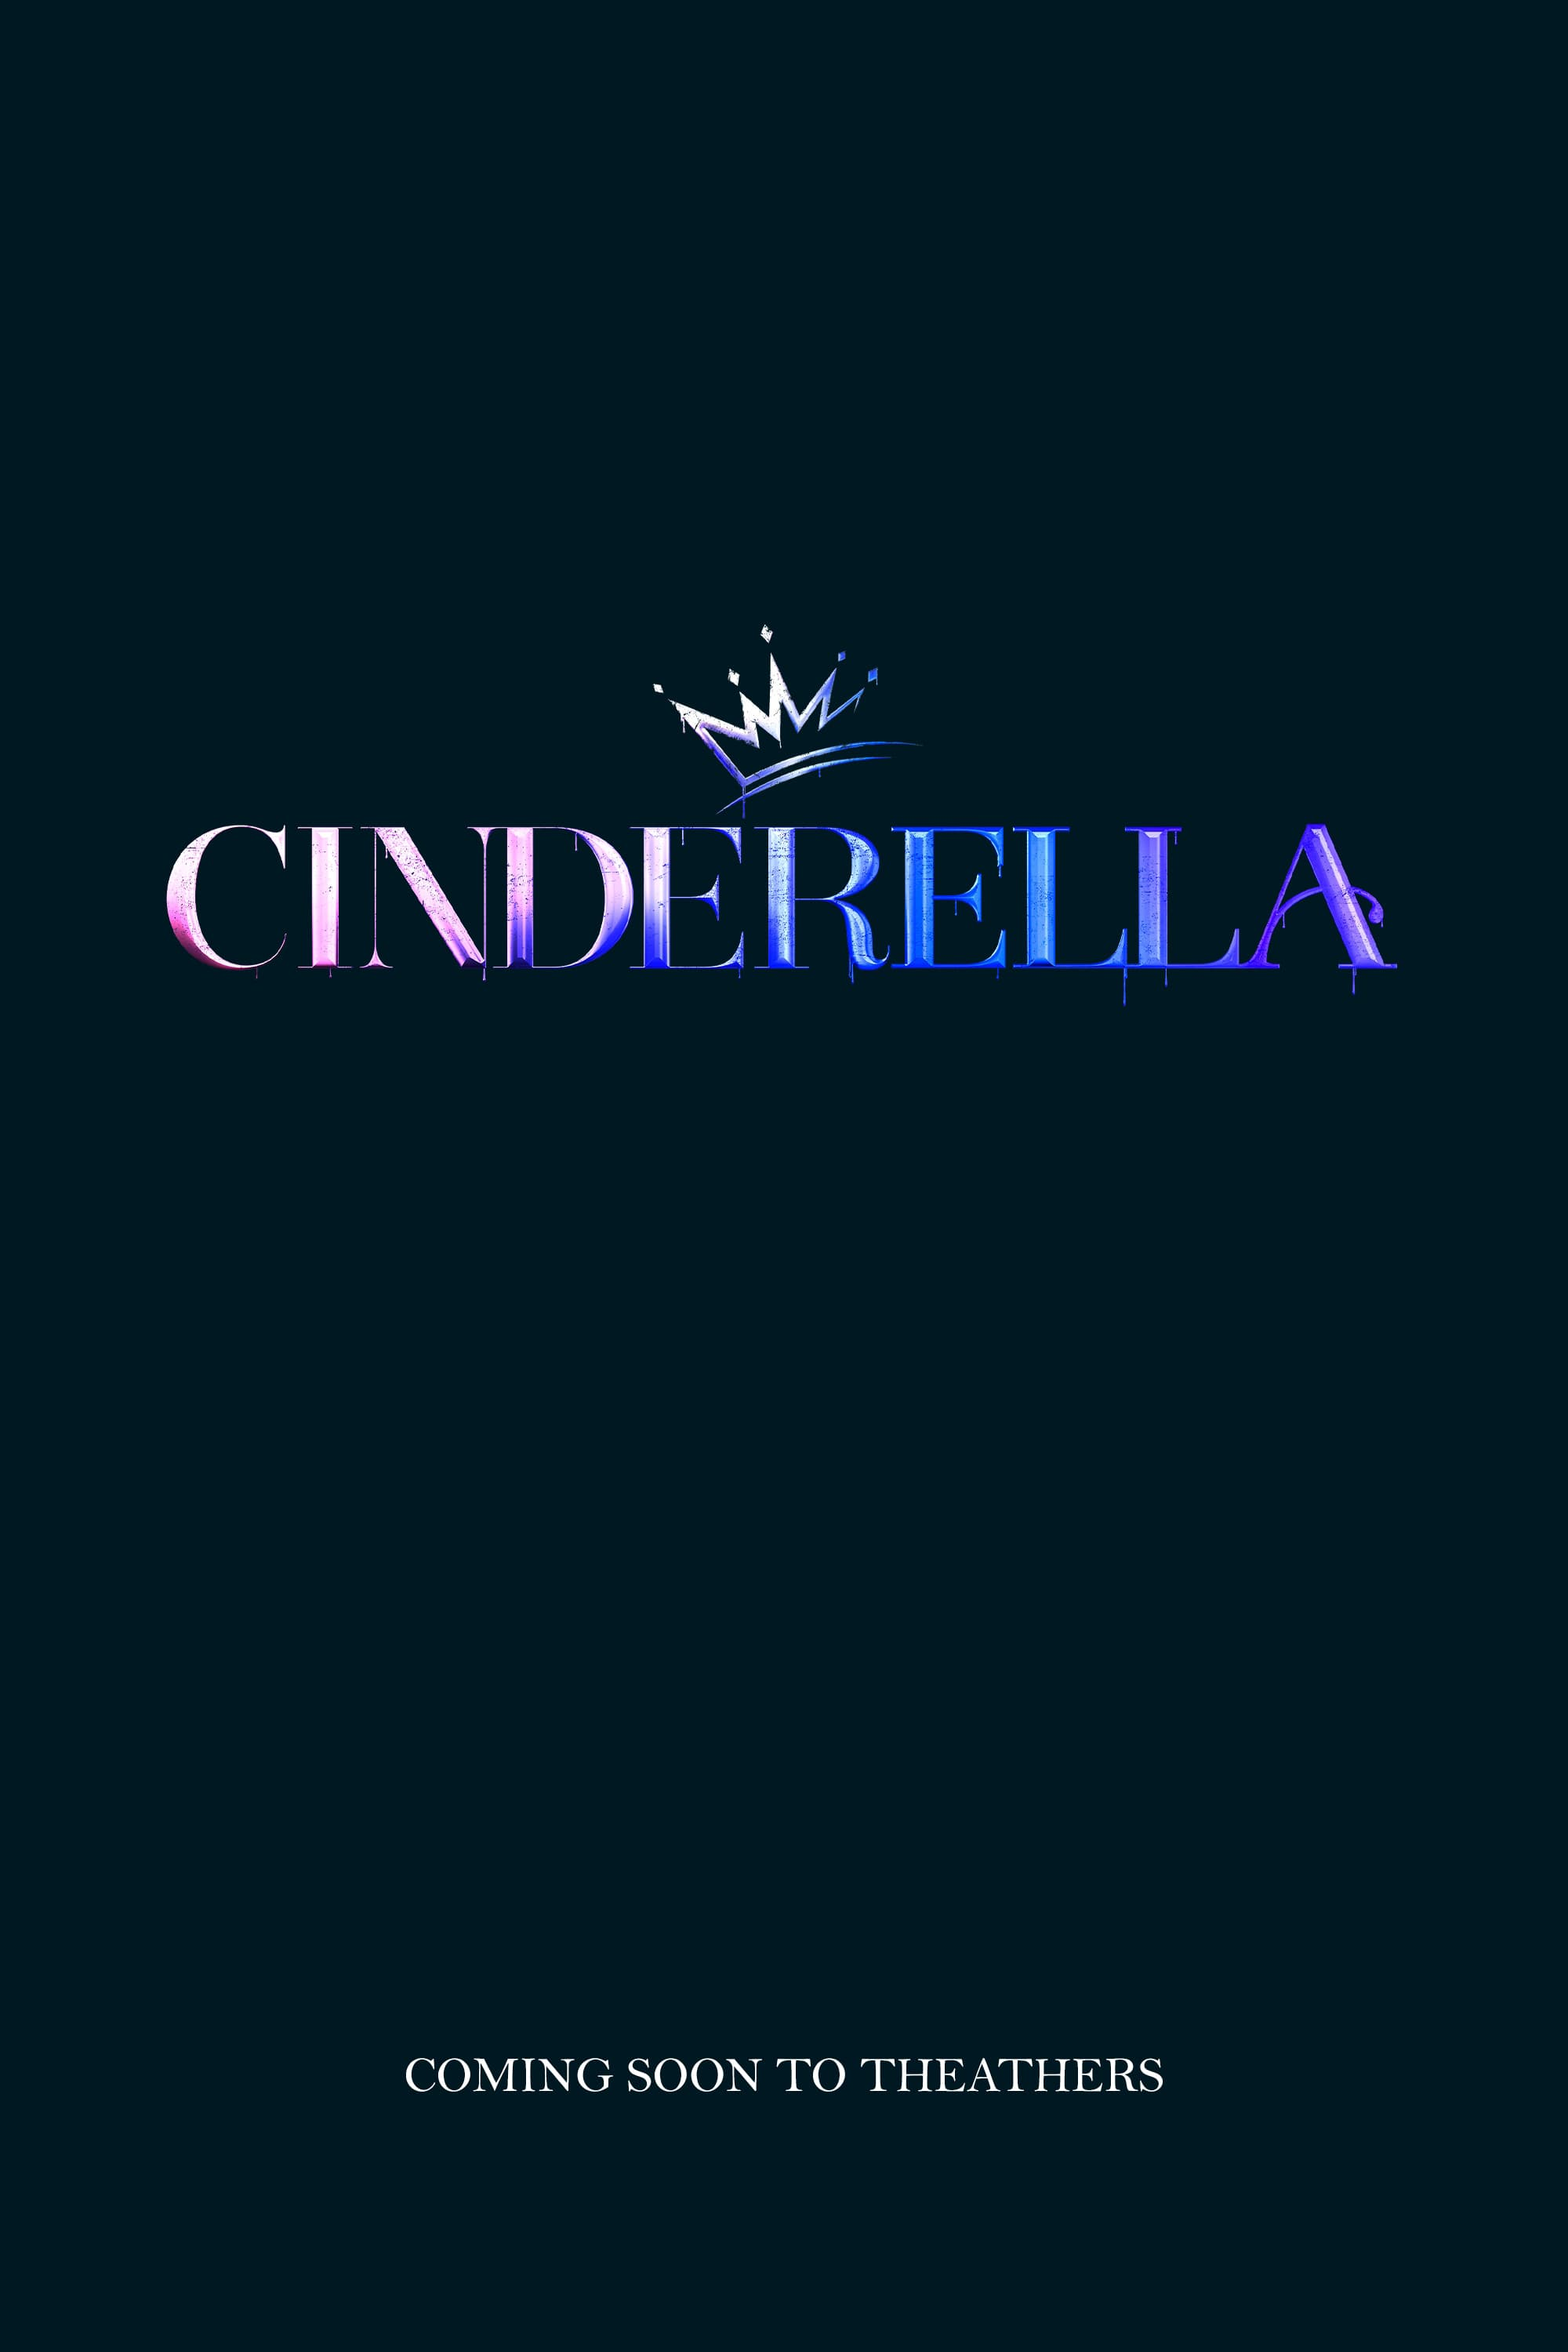 Cinderella written in all caps with a crown on top of the R